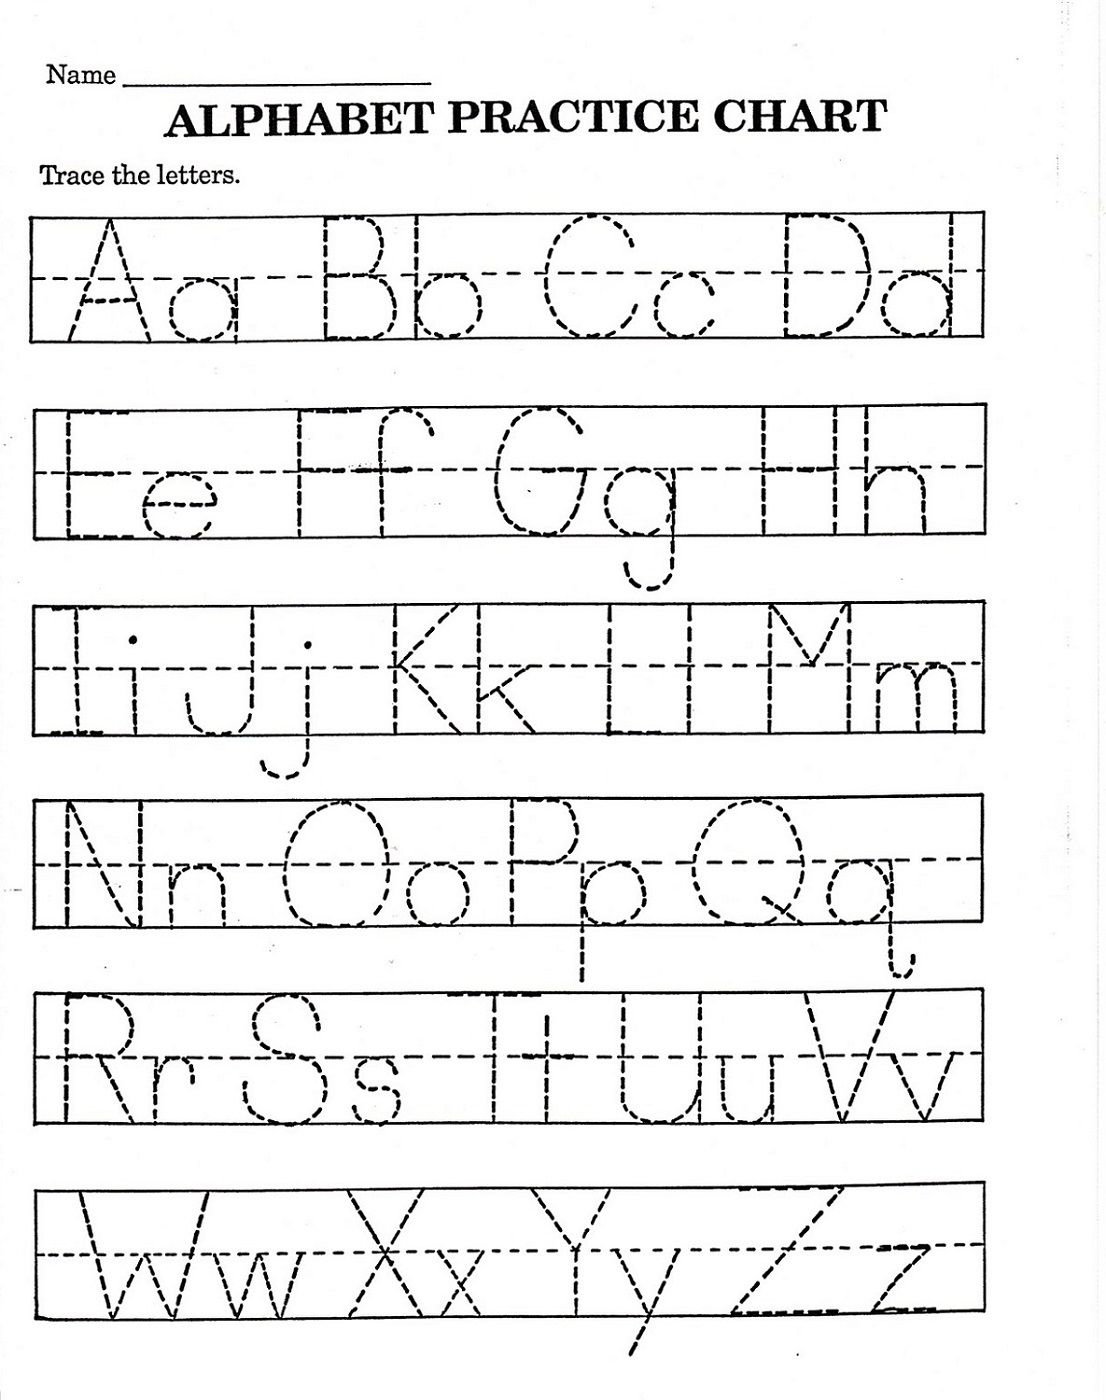 Coloring Book : Tracing Lettersheets Preschool Free Name with regard to Tracing Letters Worksheets Preschool